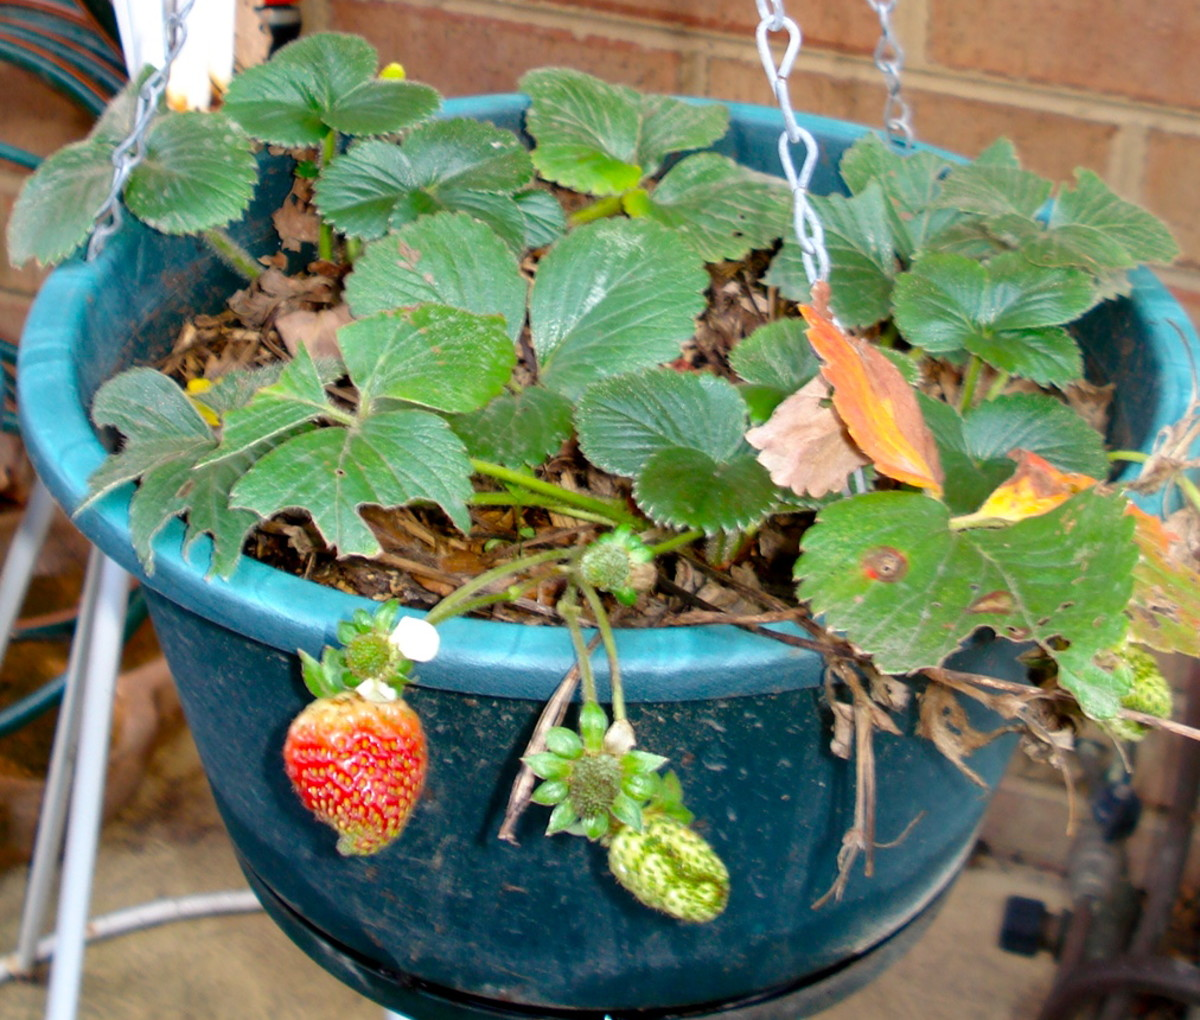 Hanging Baskets of Strawberries